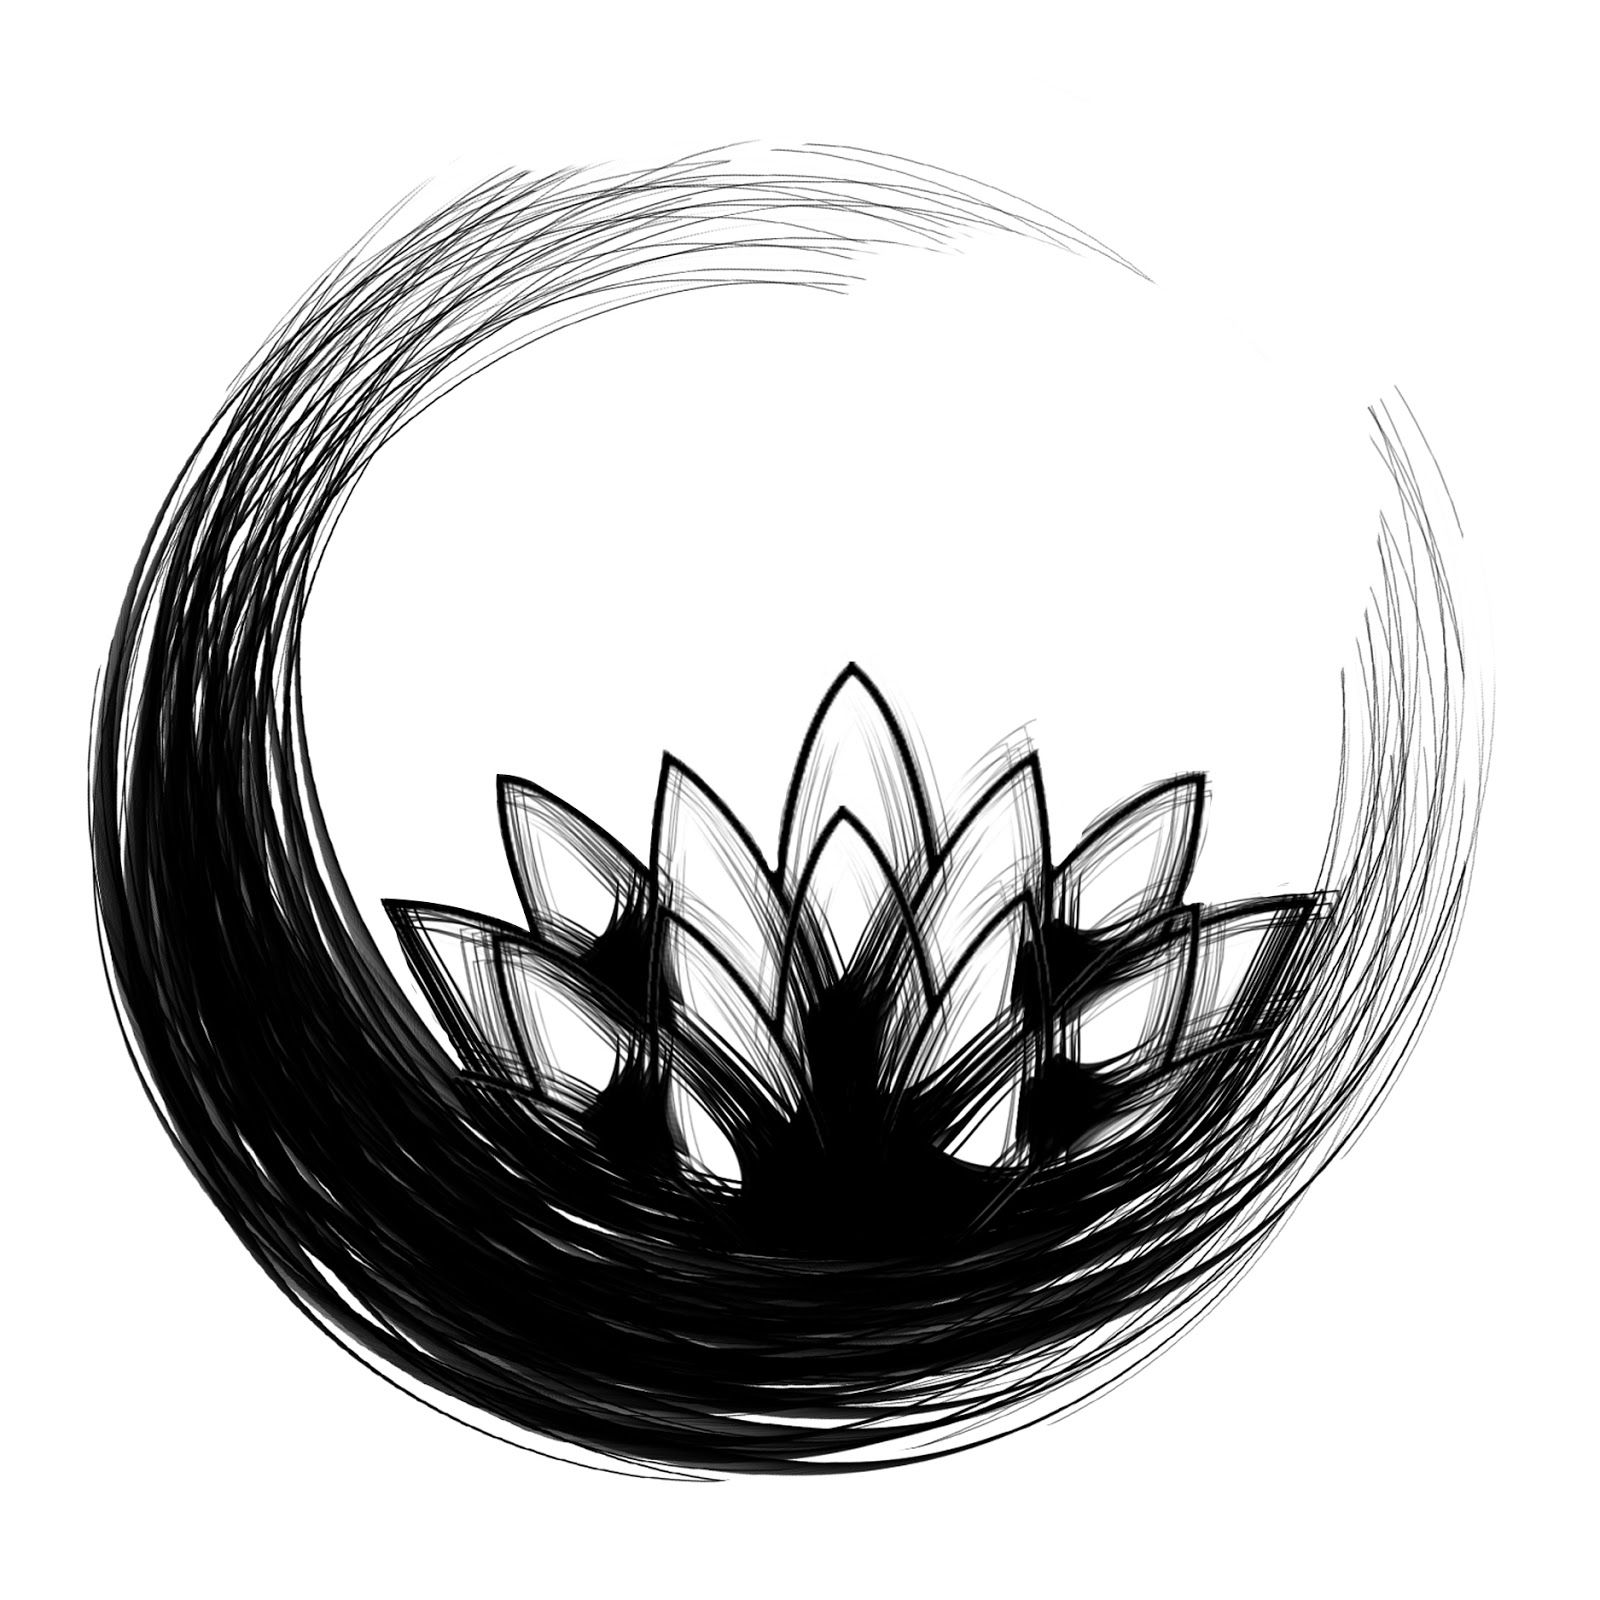 Zen Buddhist Symbols And Meanings: I Love The Enso And This One Is A Favorite